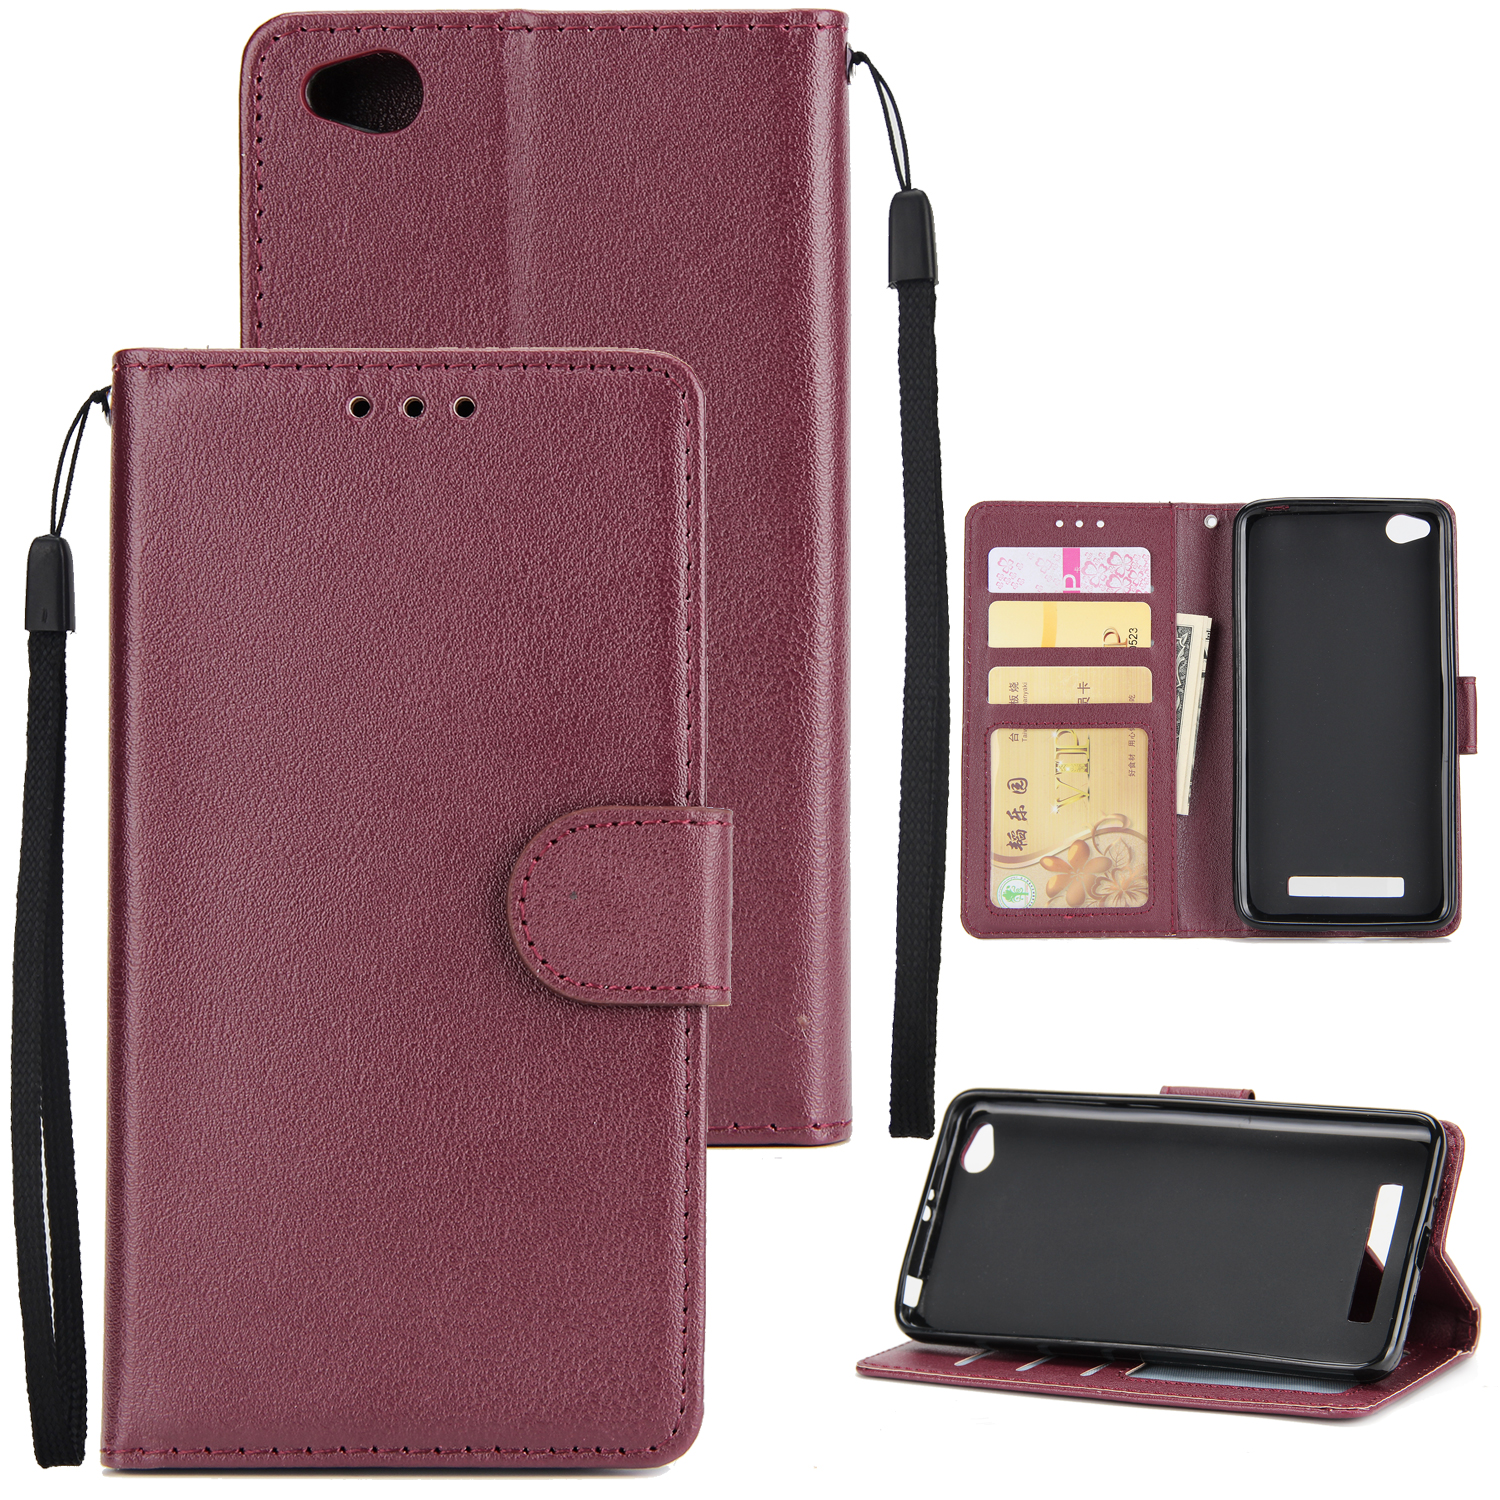 Ultra Slim Shockproof Full Protective Case with Card Wallet Slot for Xiaomi Redmi 4A Red wine